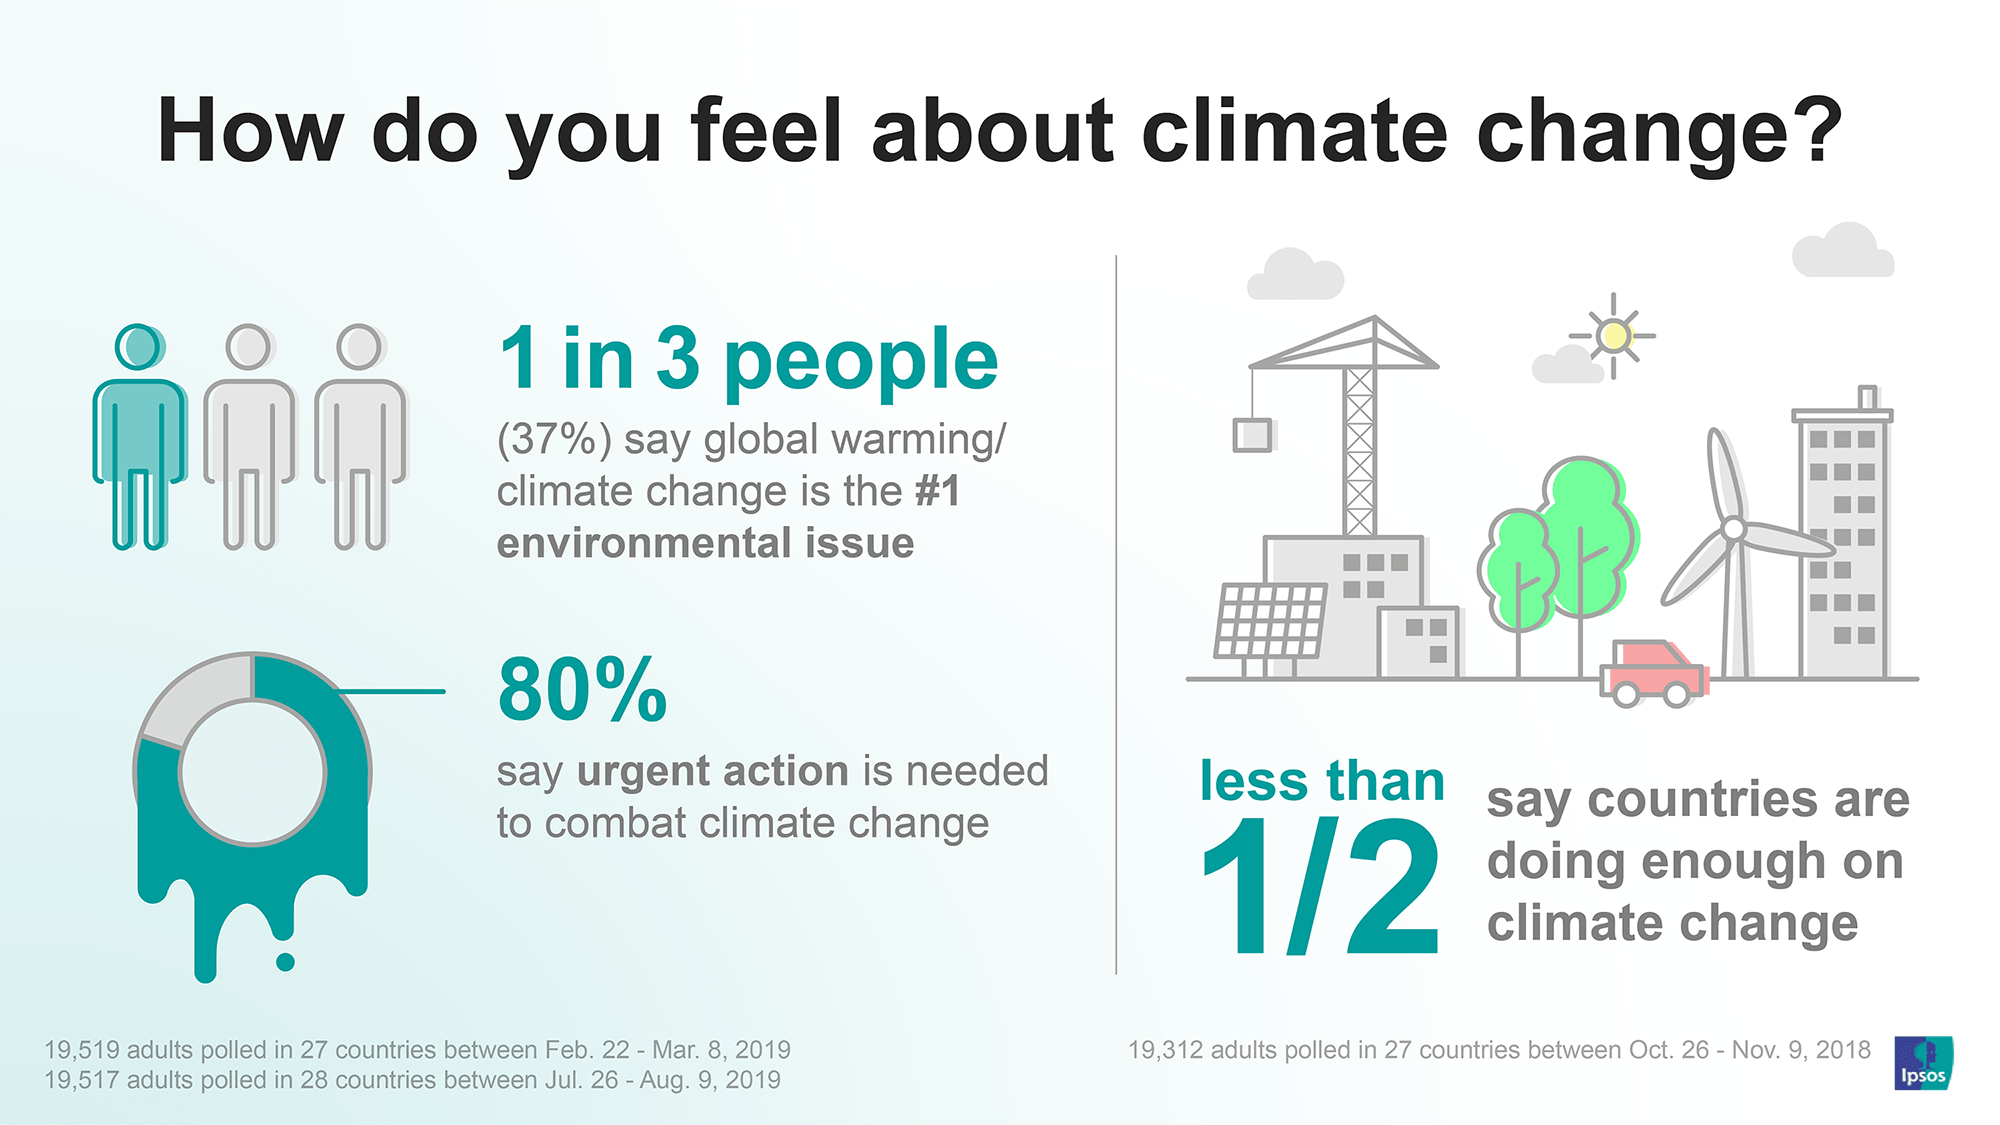 How do you feel about climate change? 80% say urgent action is needed | Ipsos